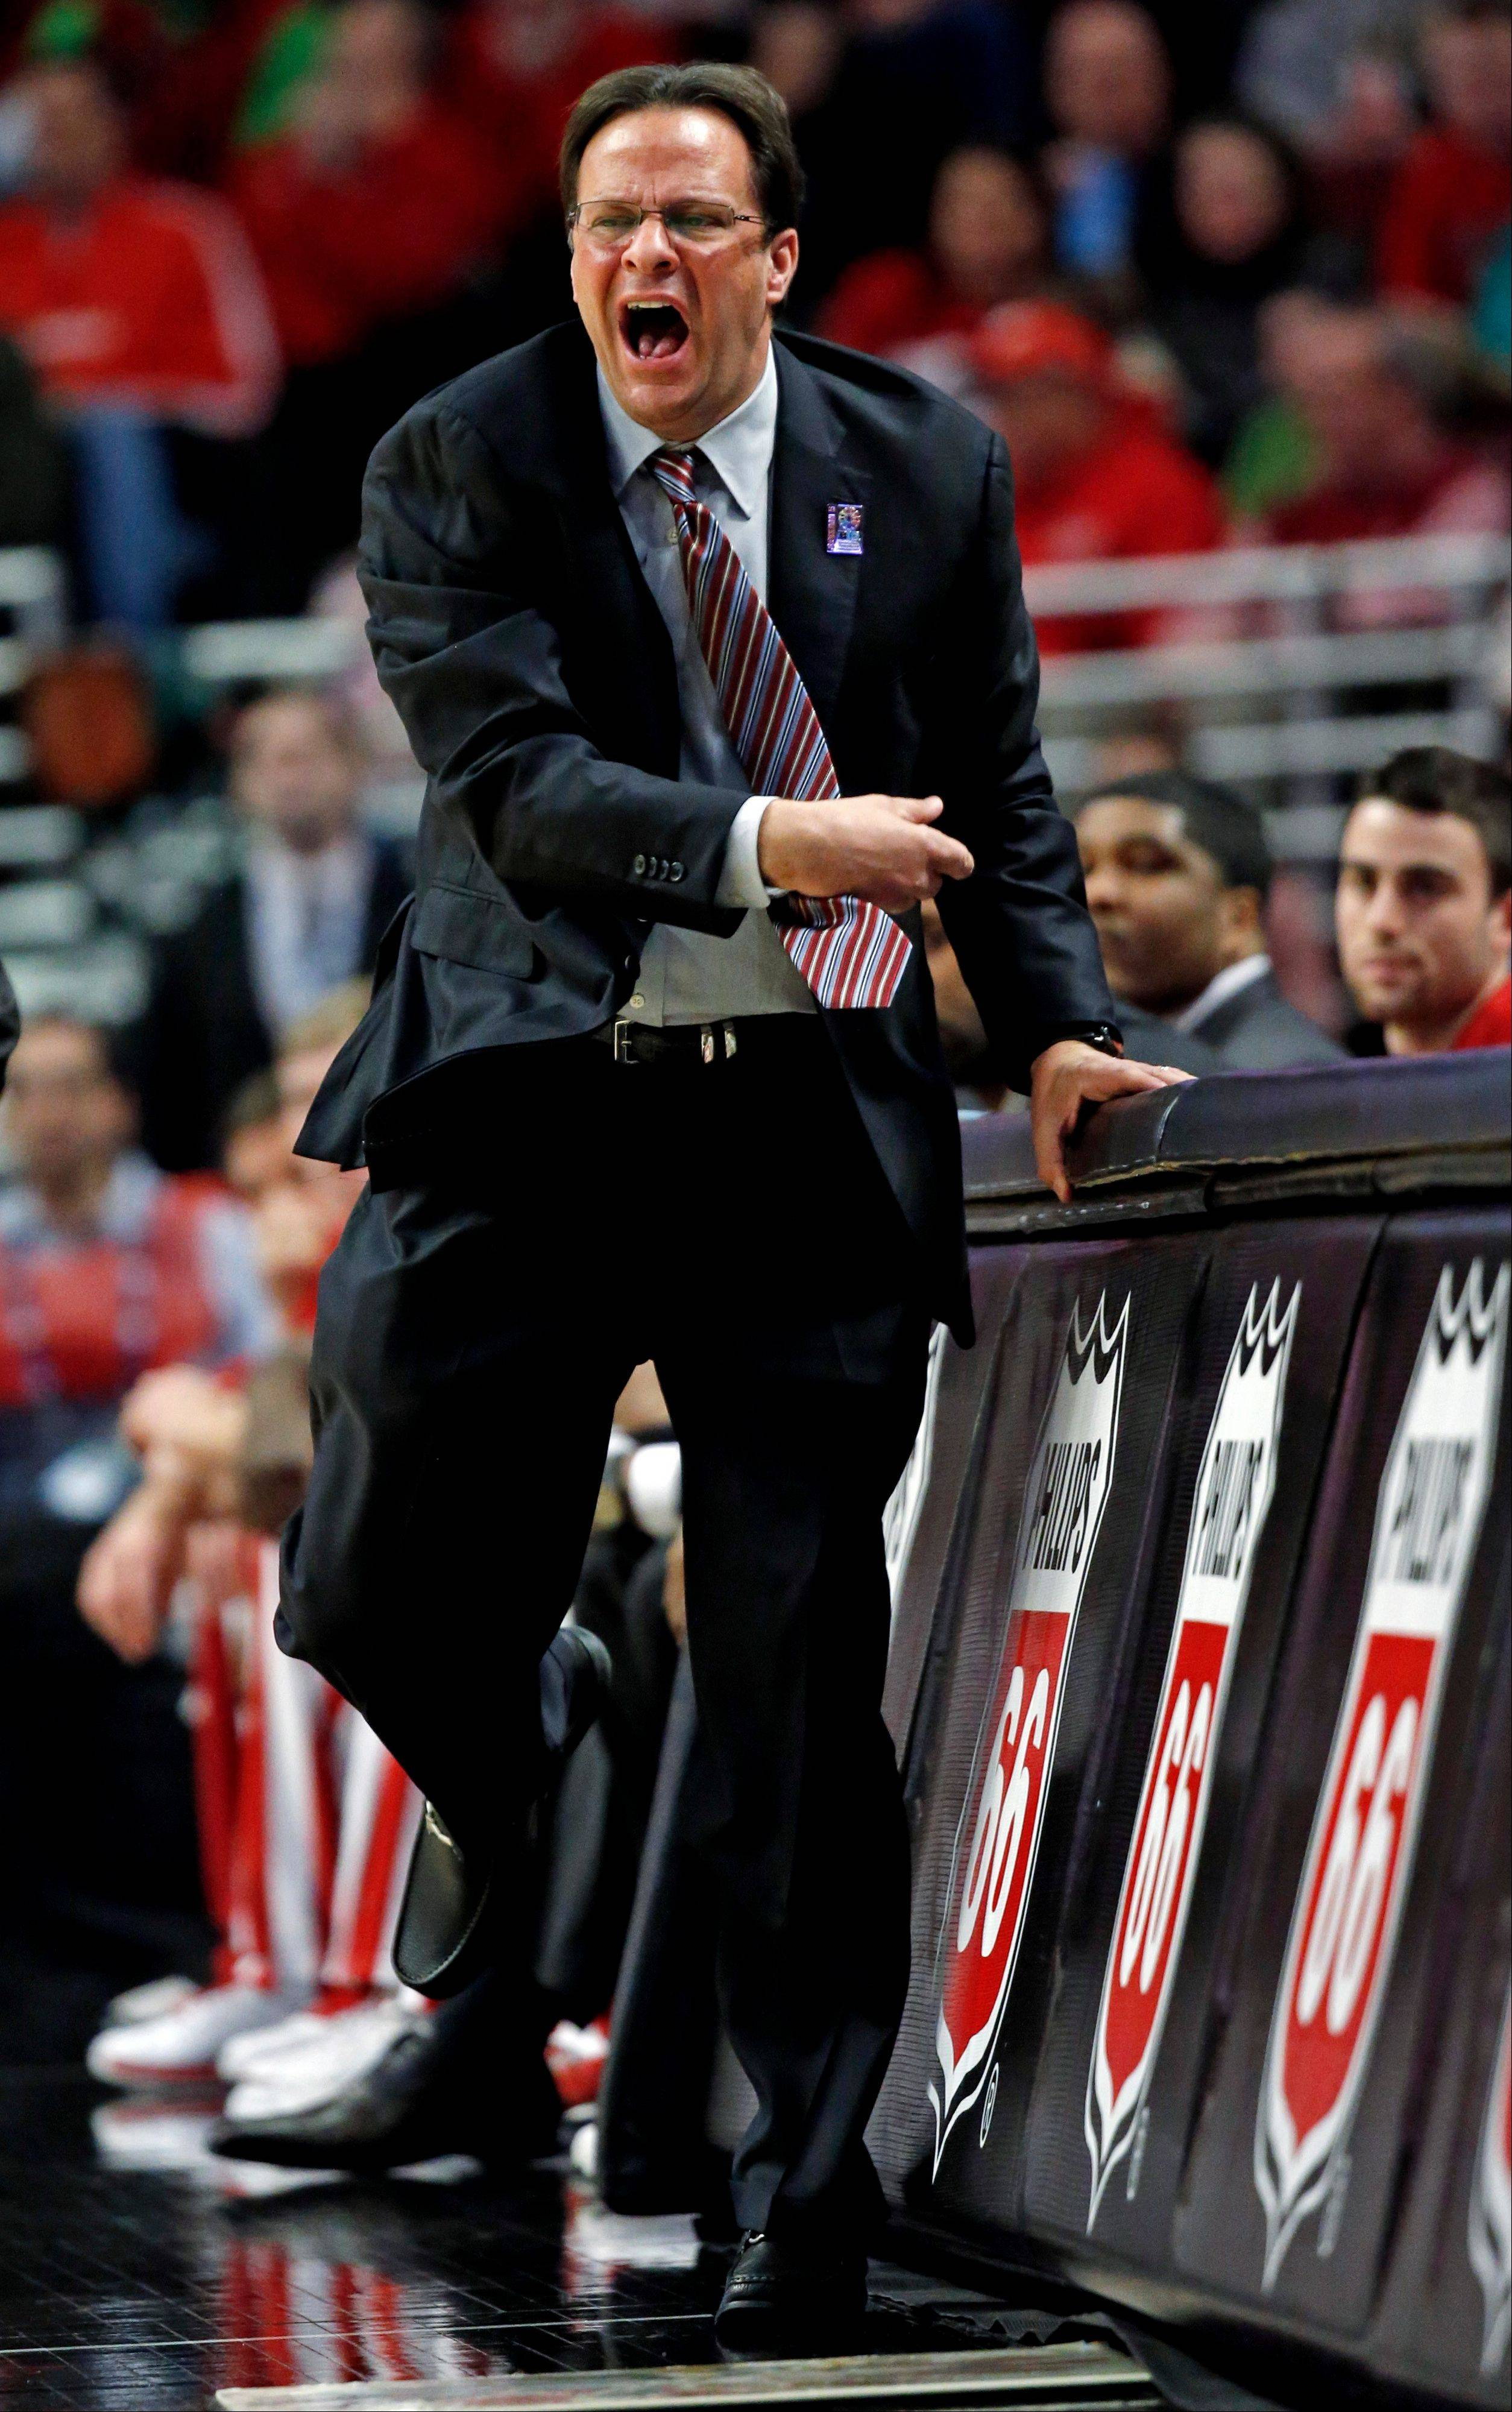 Indiana head coach Tom Crean reacts during the first half of an NCAA college basketball game against Wisconsin at the Big Ten tournament Saturday, March 16, 2013, in Chicago.